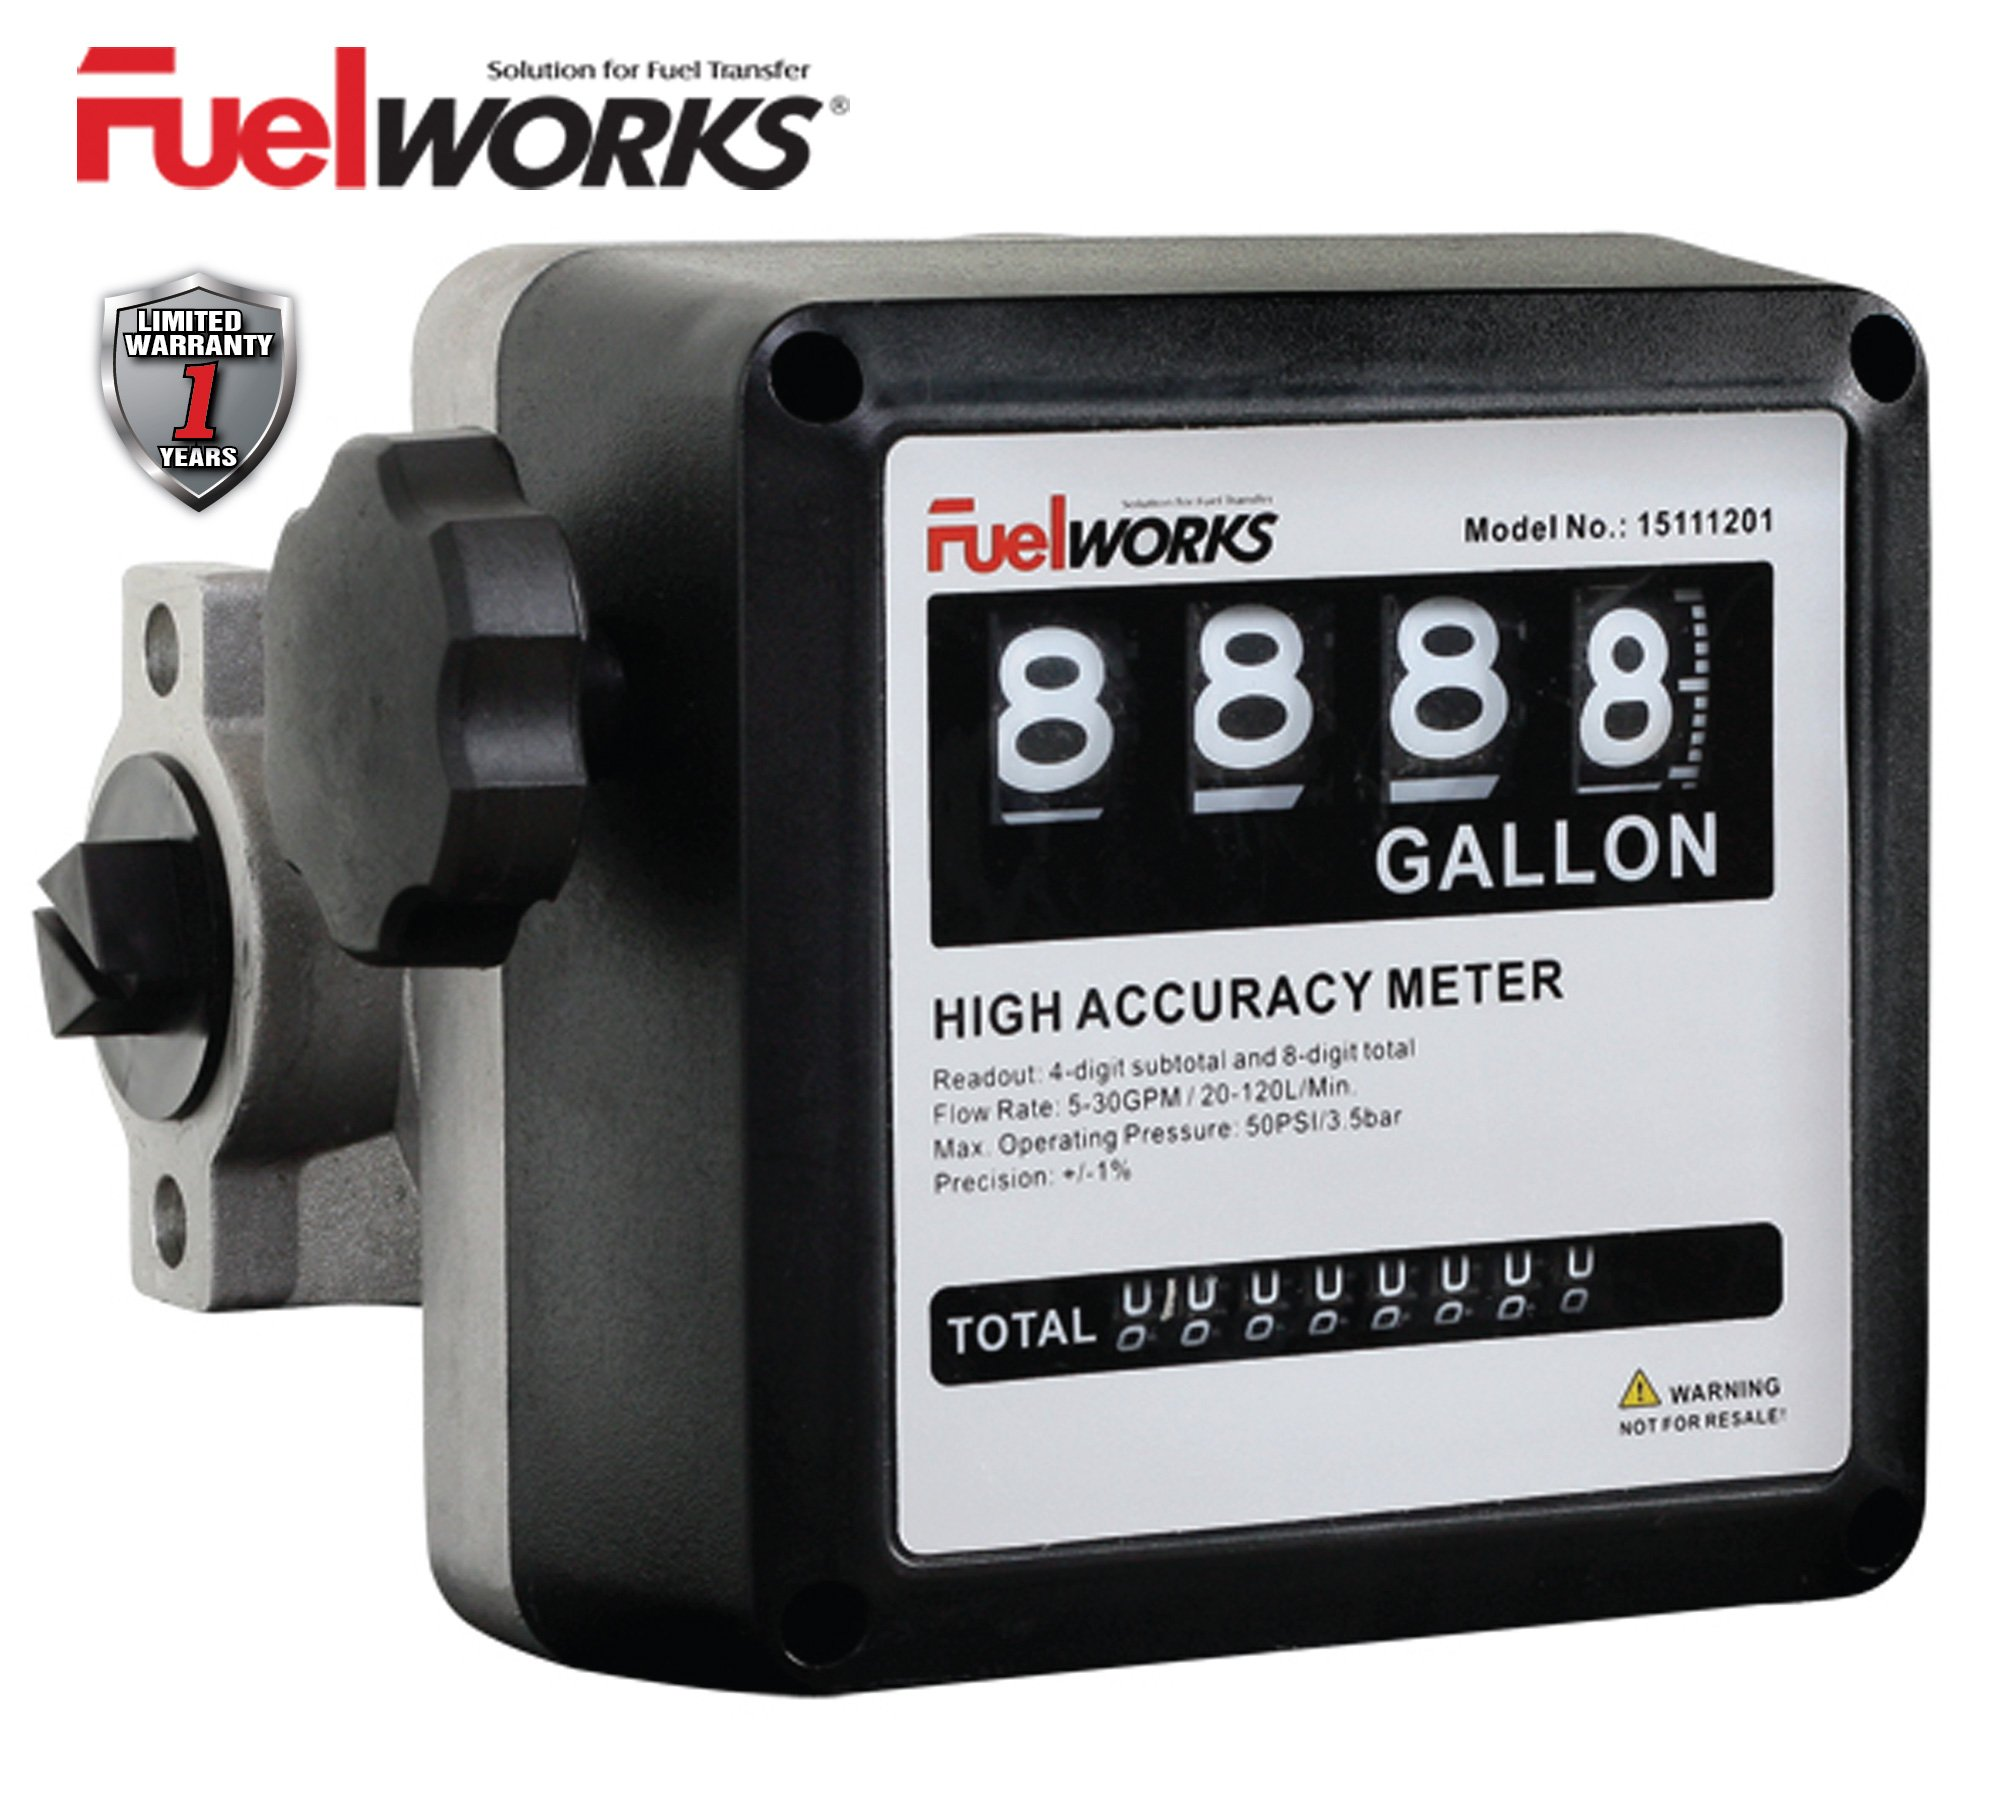 Fuelworks 15111200A 1'' Mechanical Fuel Meter, Black